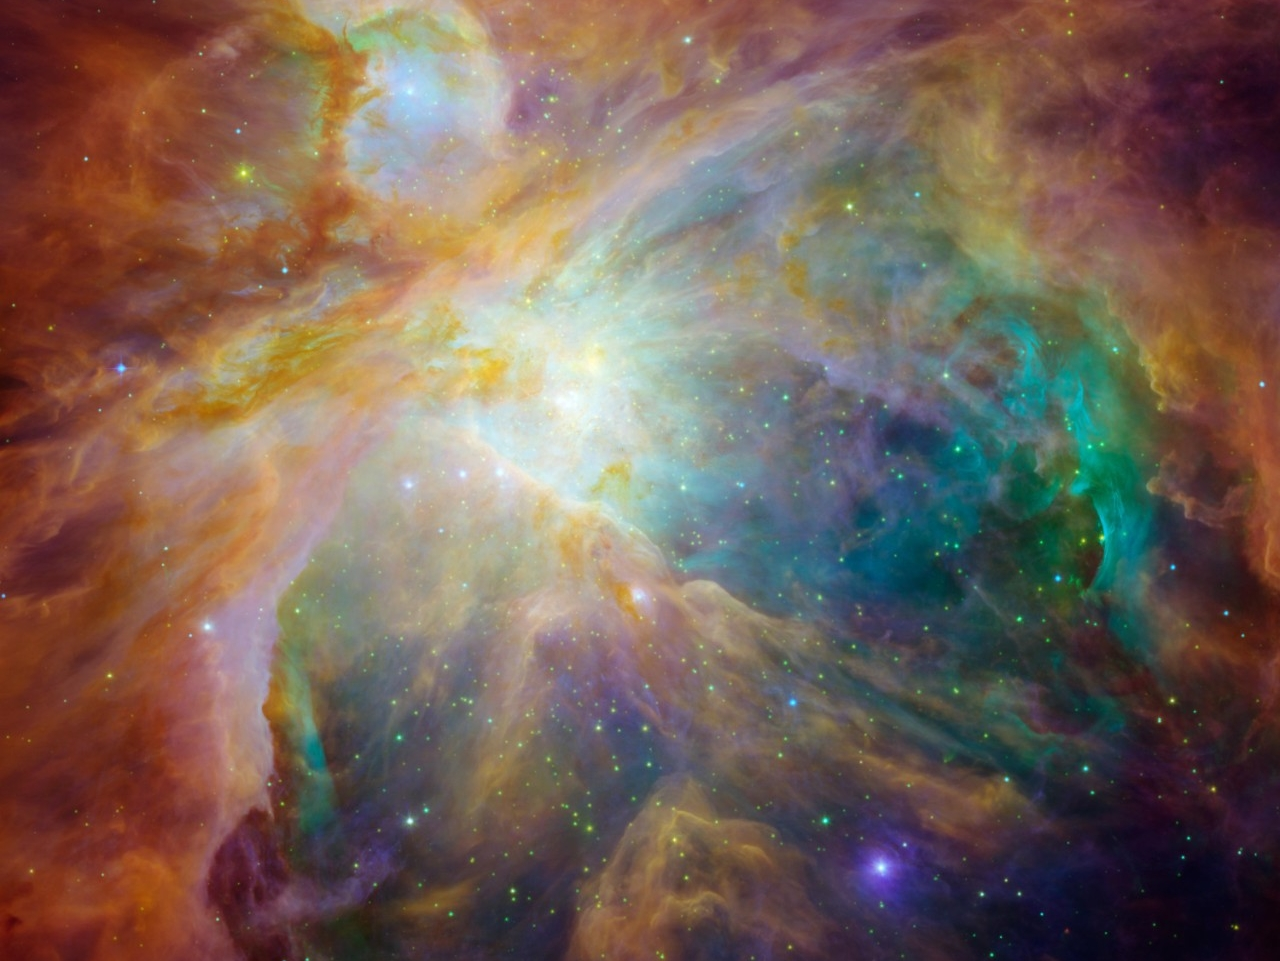 The Orion Nebula is captured by the Hubble Space Telescope. (NASA/JPL-Caltech/STScI)